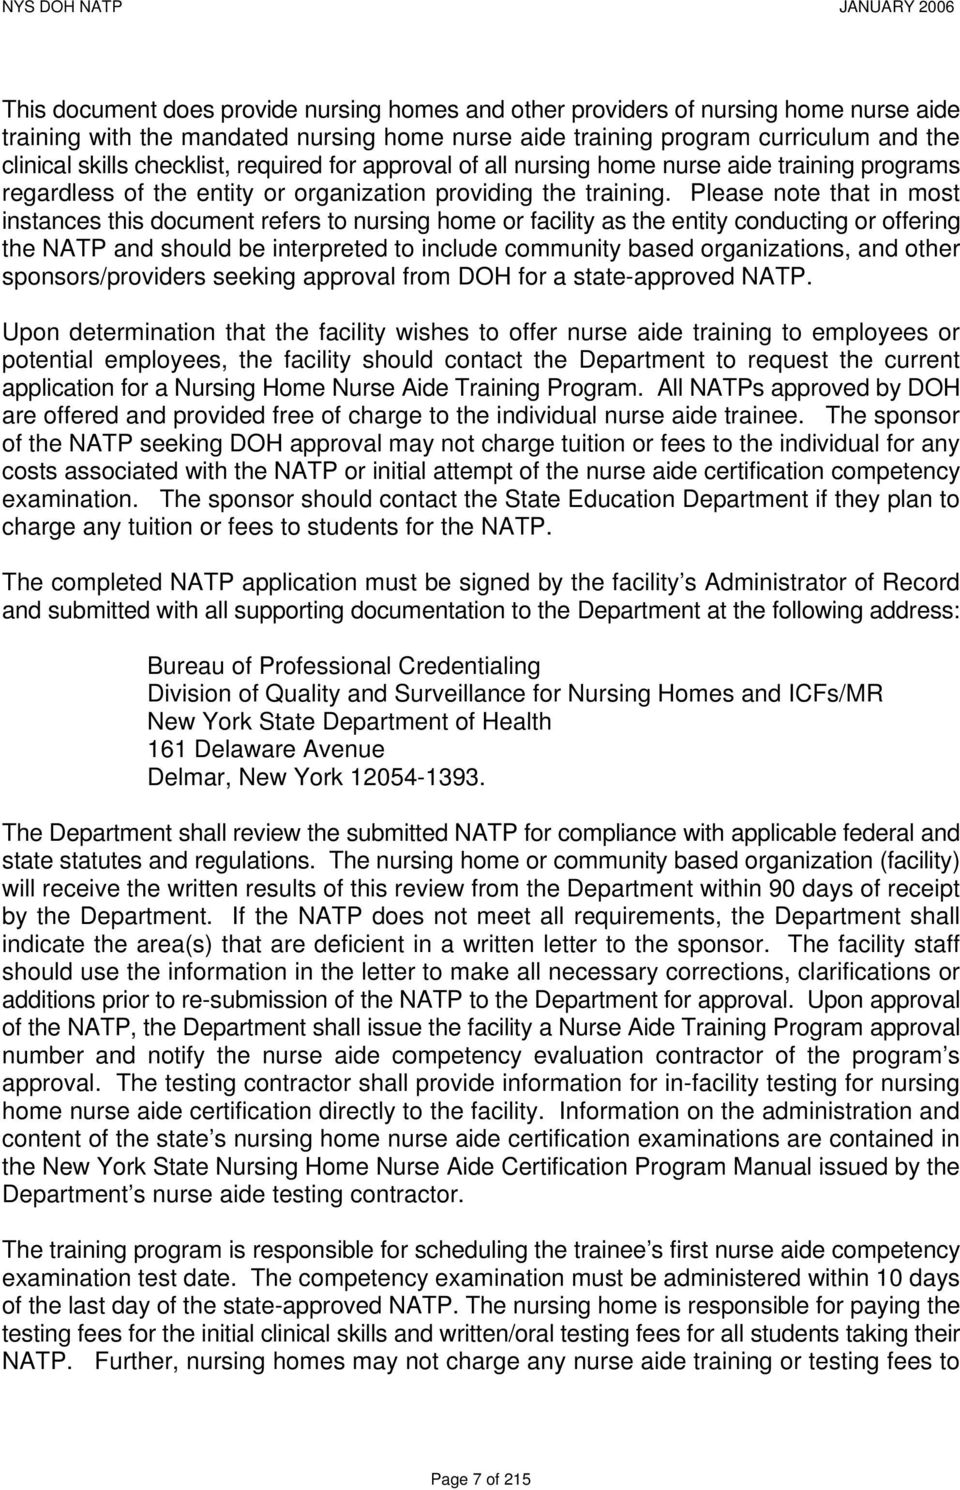 Please note that in most instances this document refers to nursing home or facility as the entity conducting or offering the NATP and should be interpreted to include community based organizations,